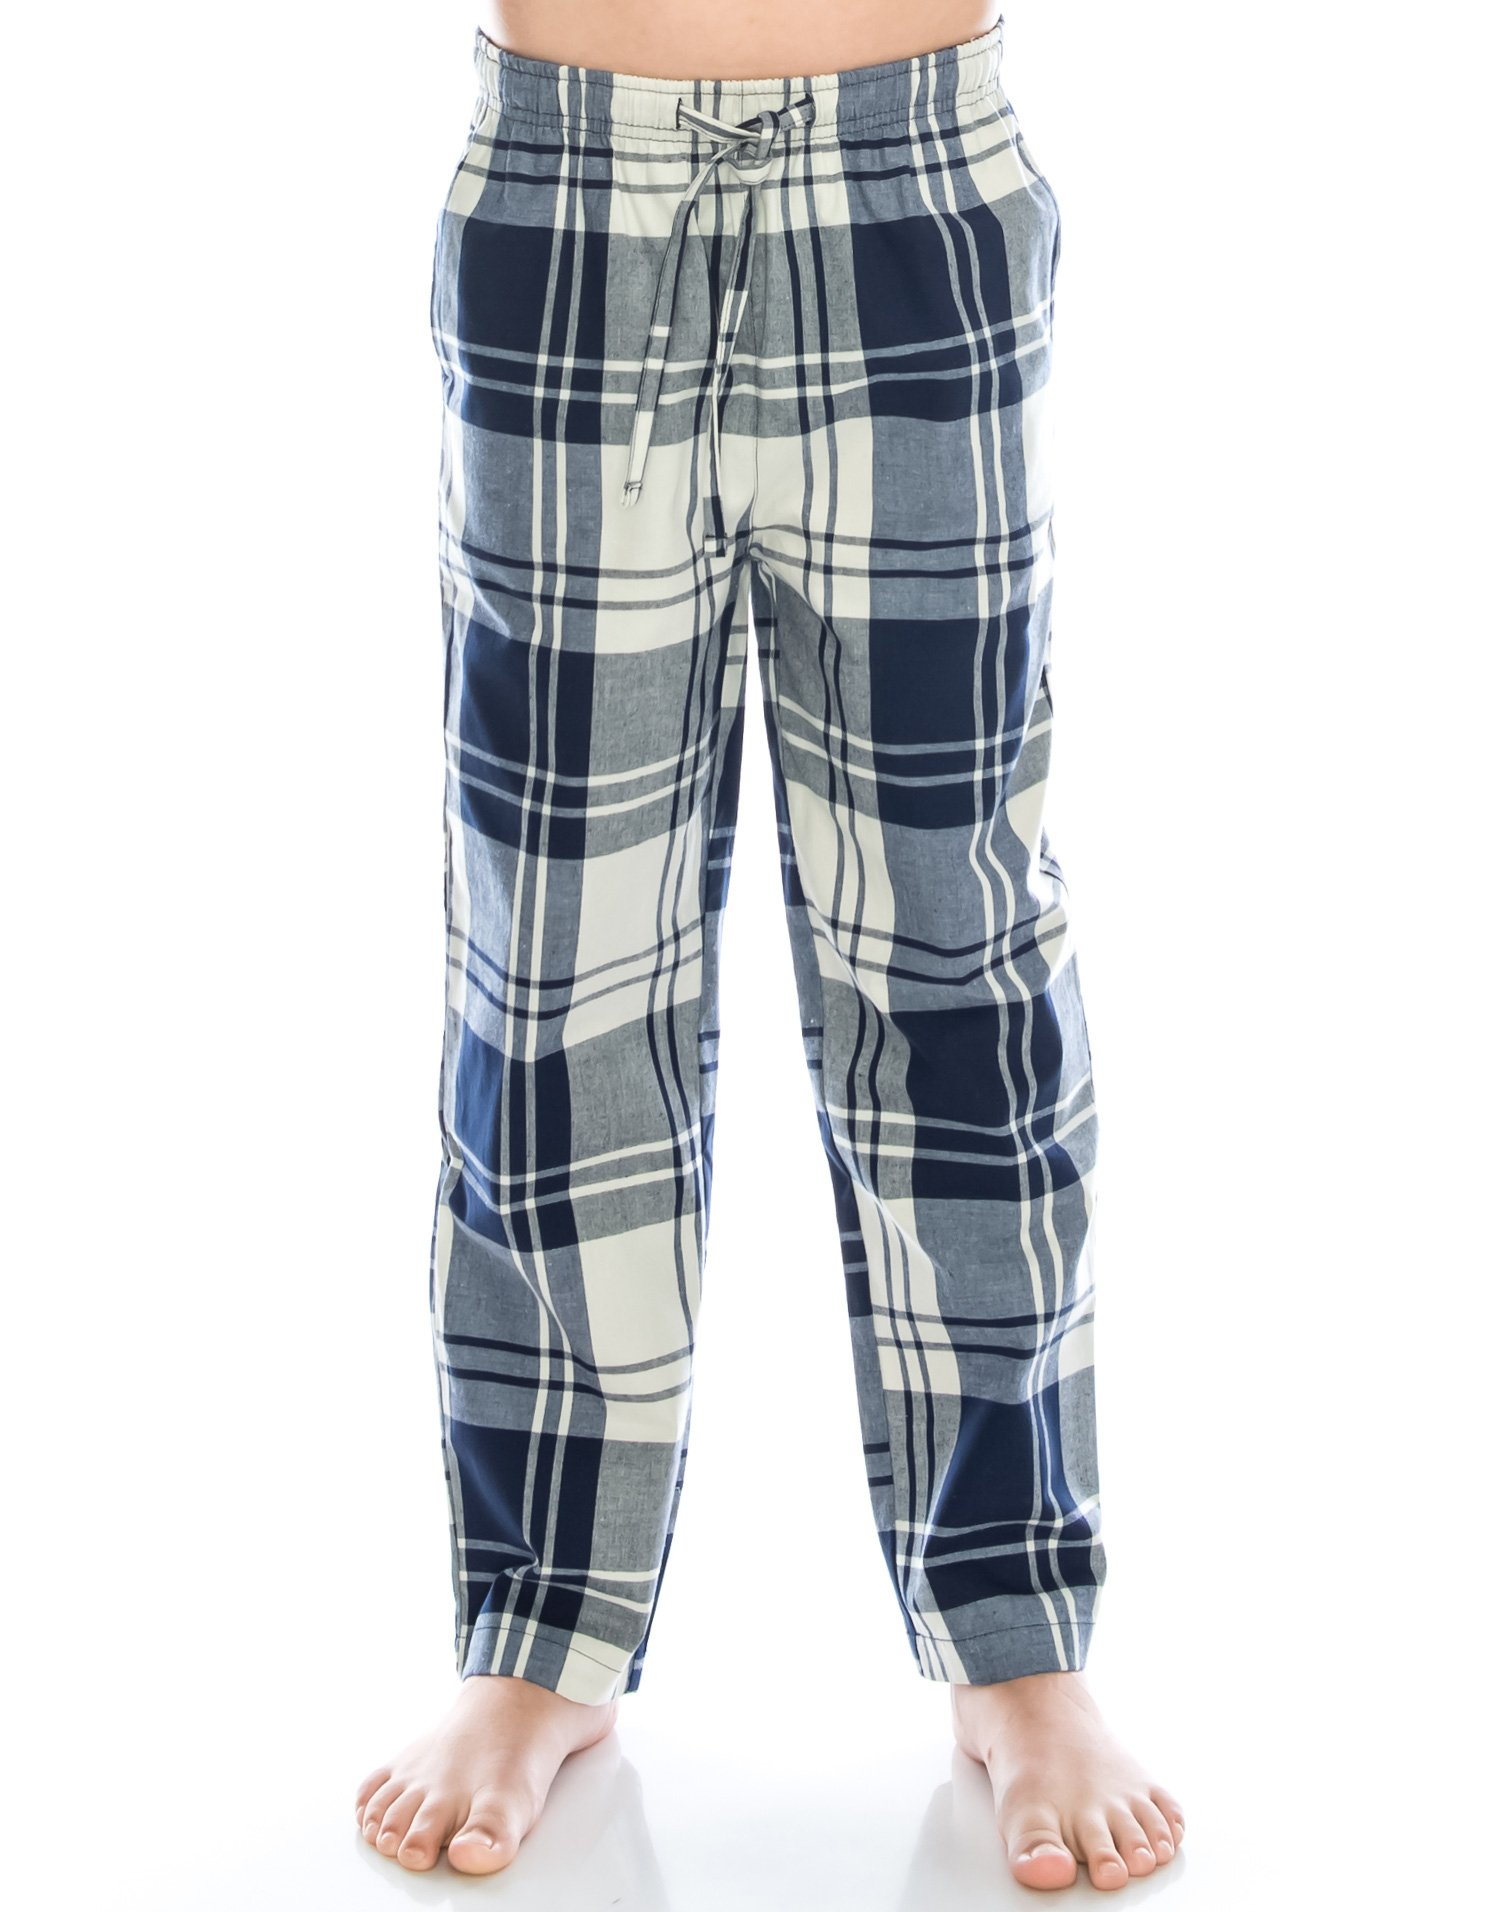 TINFL 6-14 Years Big Boys Plaid Check Soft